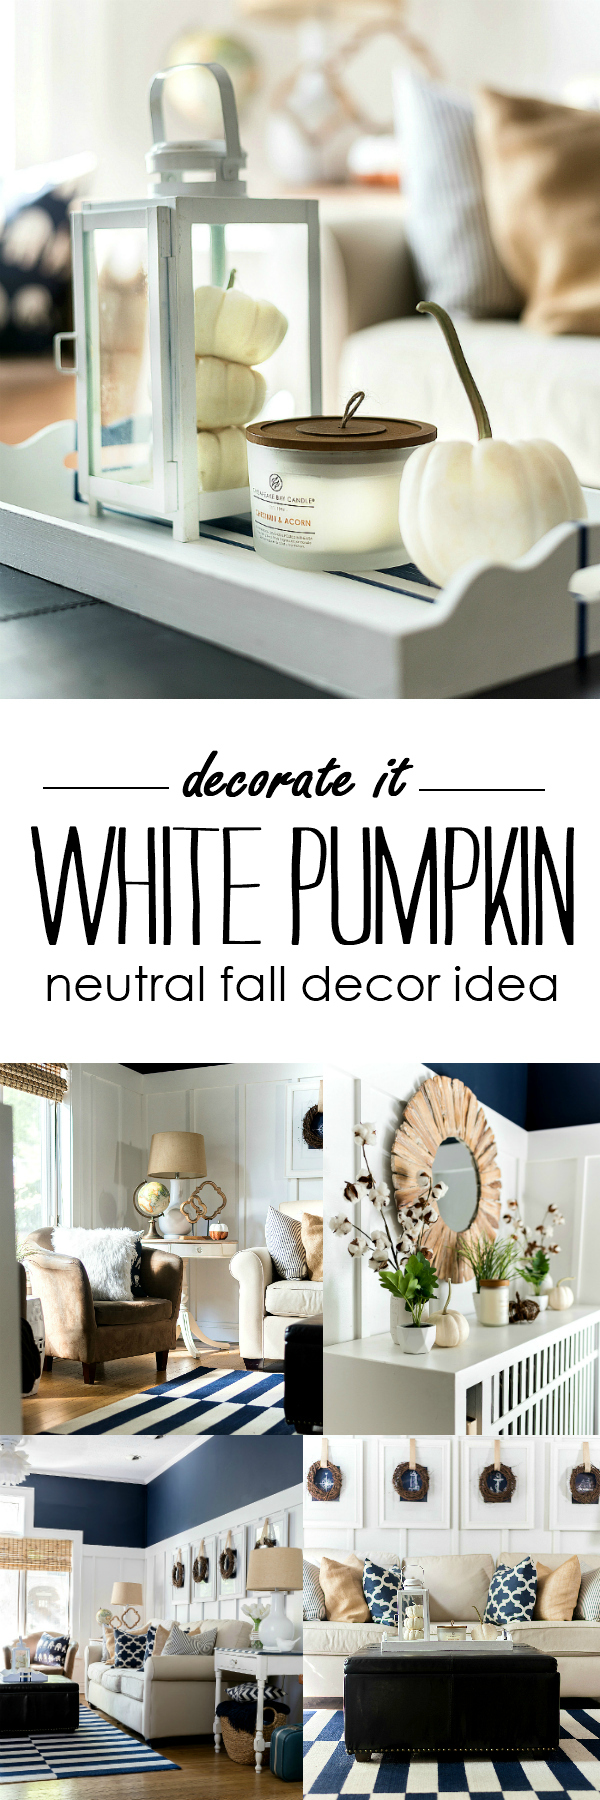 Fall Decor White Pumpkins - Fall Decor Neutral - Navy & White Fall Decor - Board and Batten Living Room Fall Decor